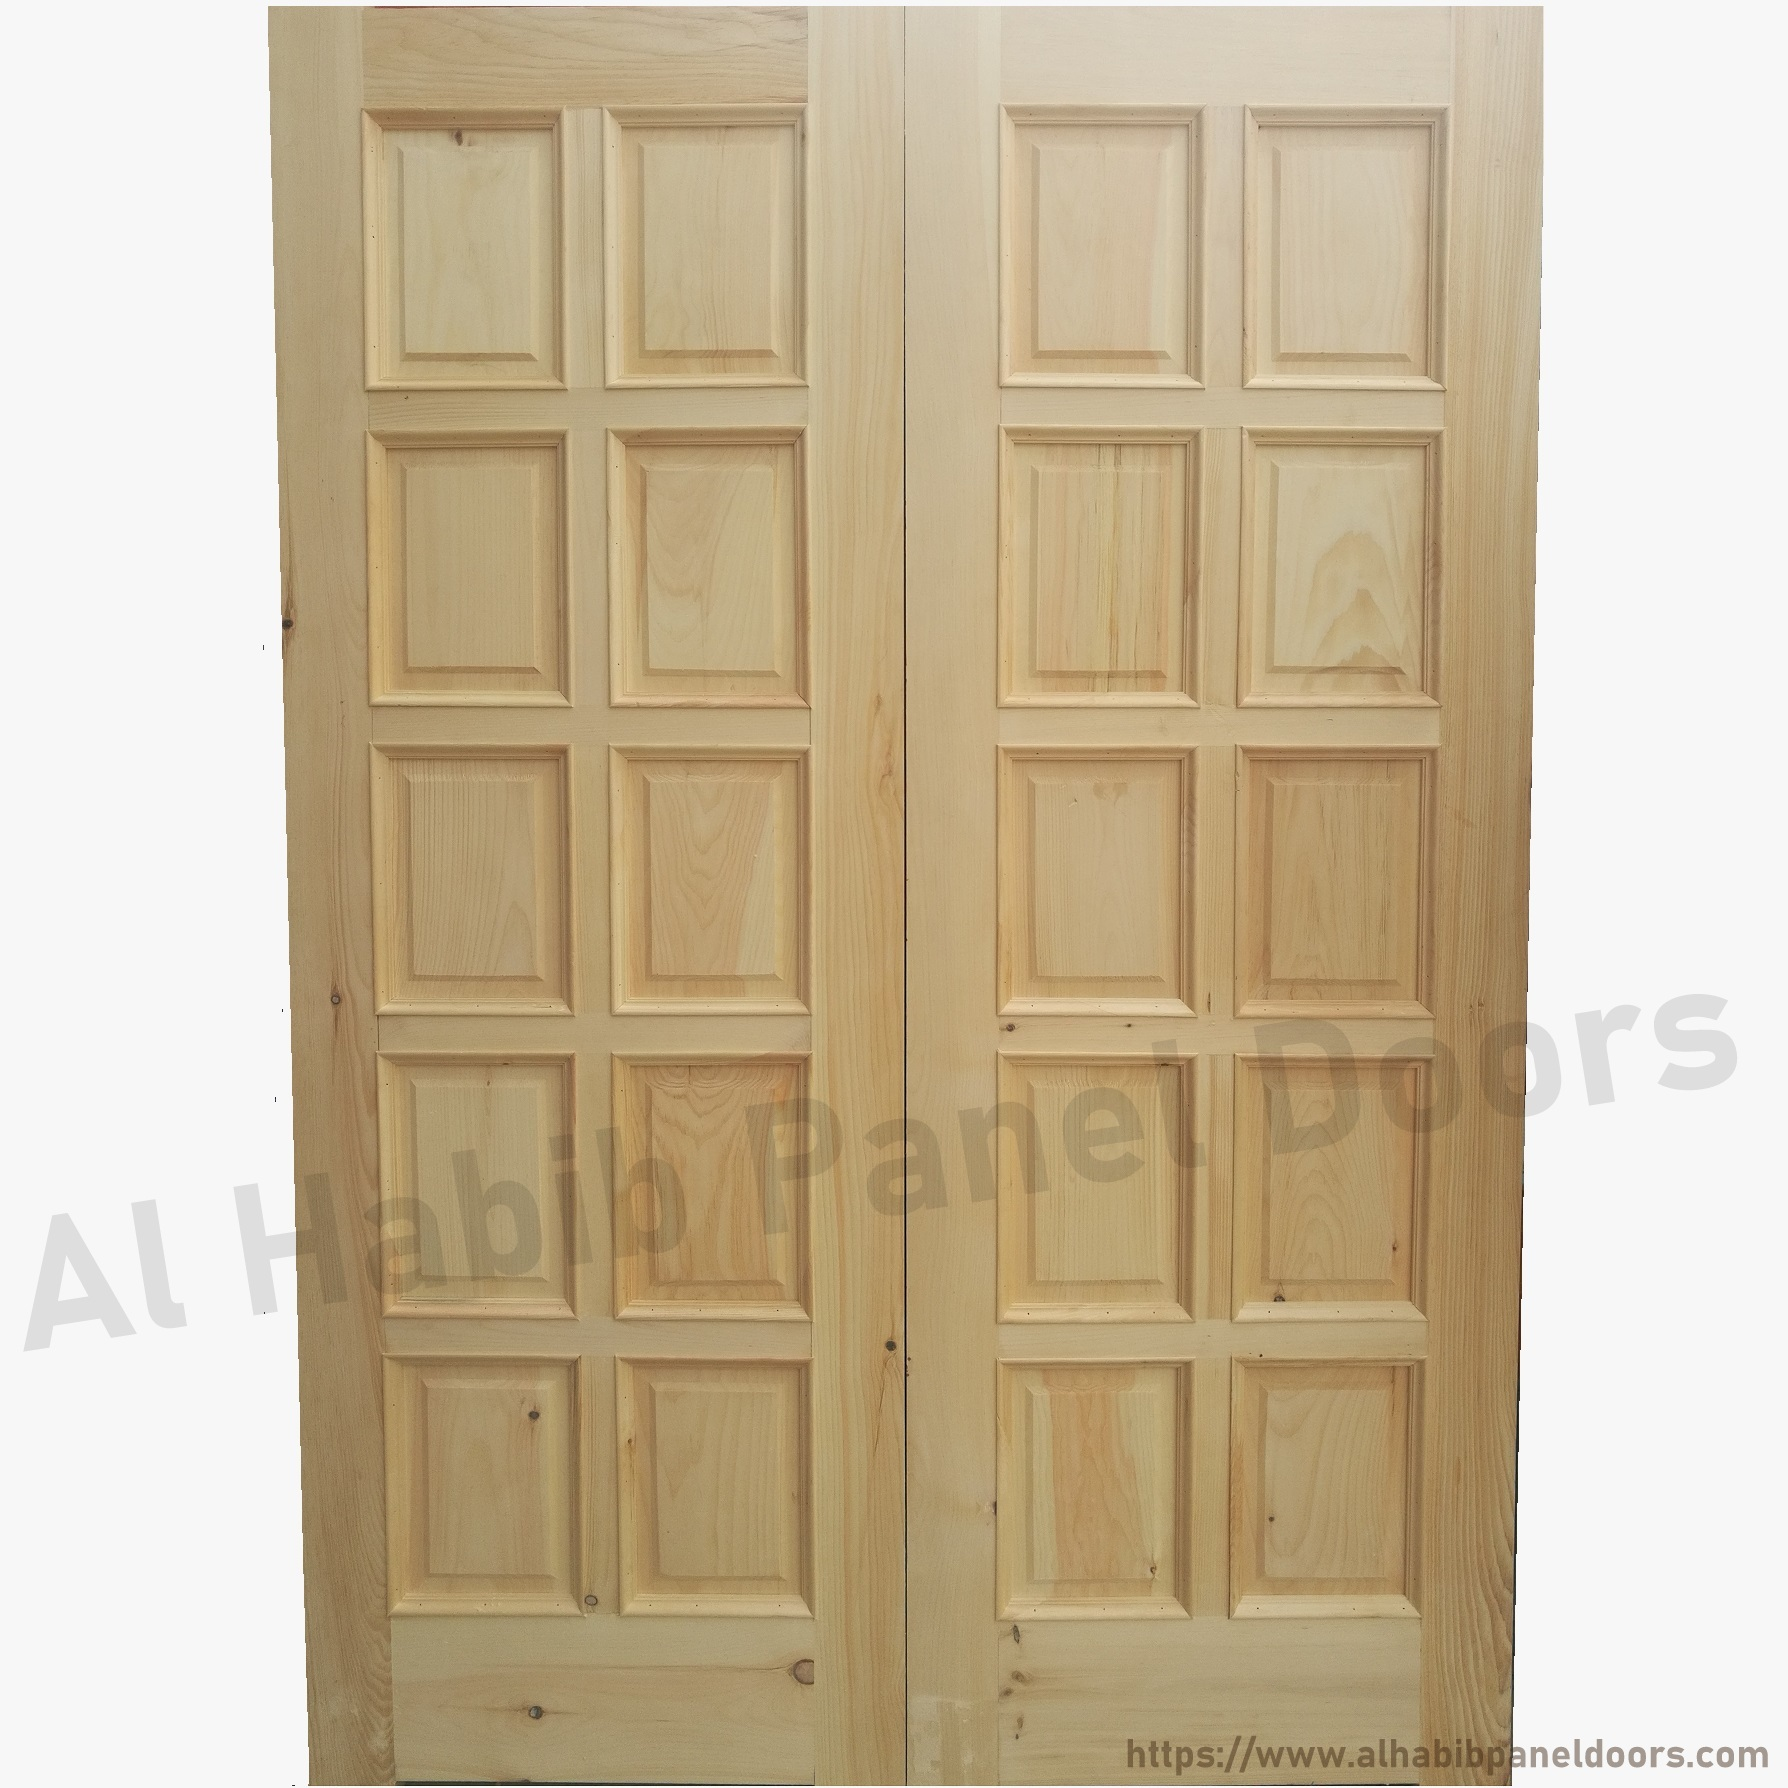 Latest wooden main double door designs native home for Double door designs for home